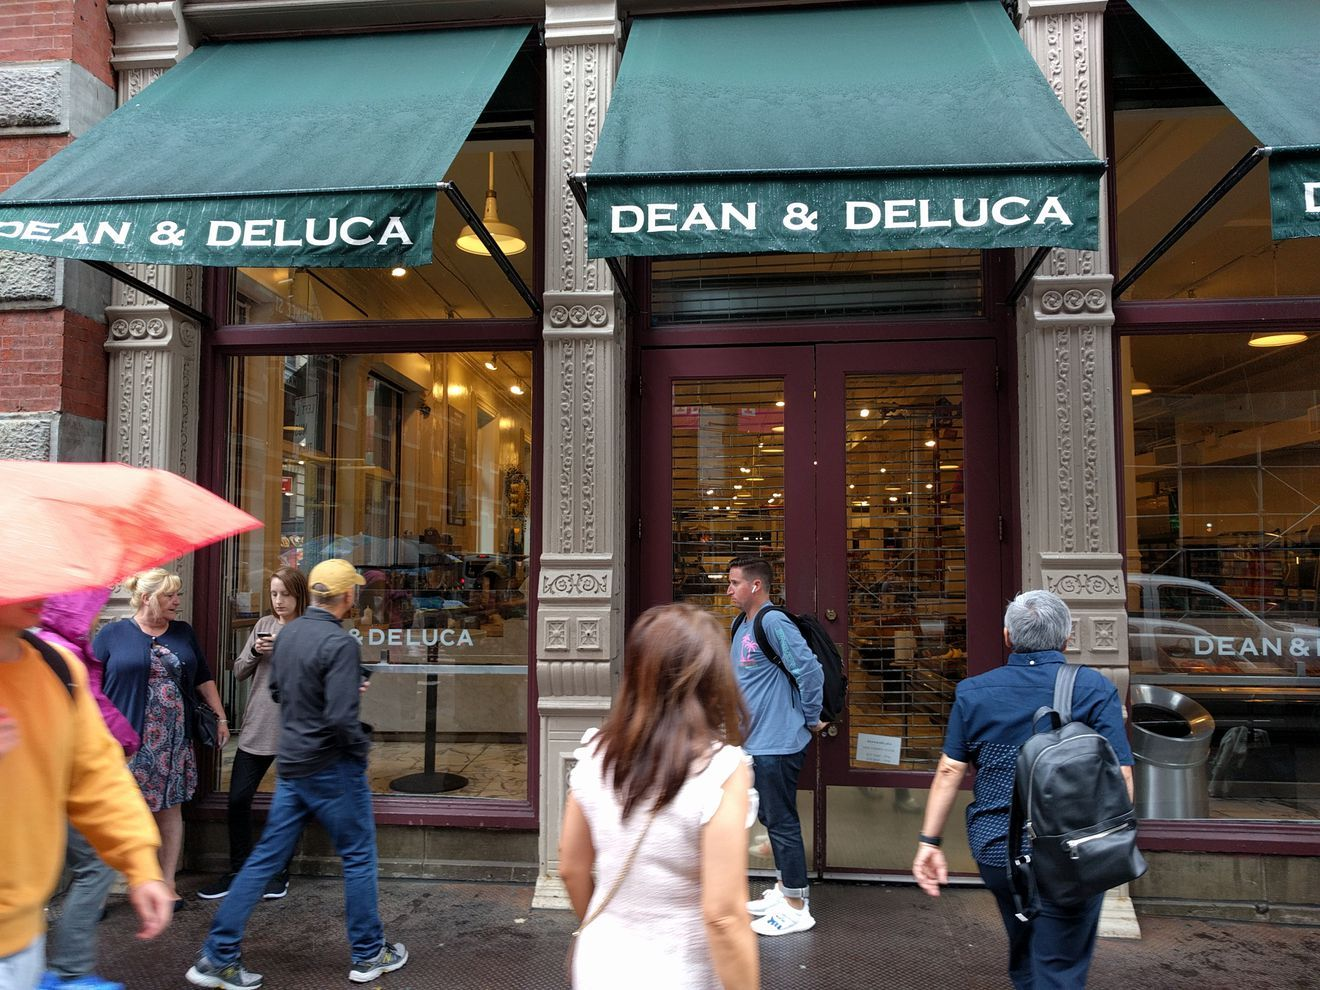 Dean & DeLuca's Painful Decline Continues With Closure of